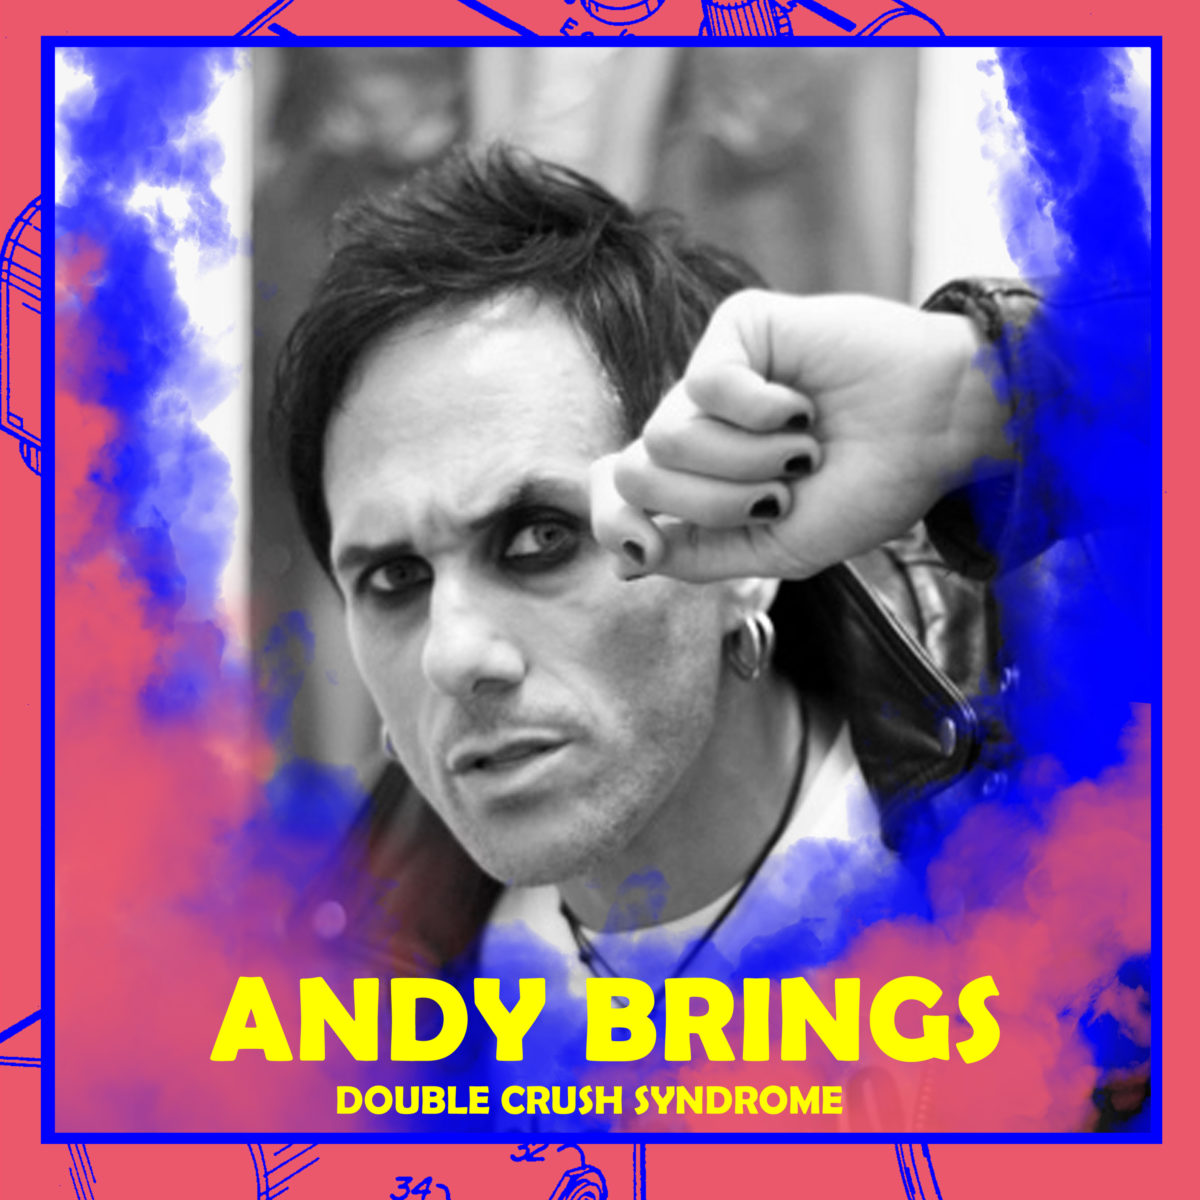 Andy Brings (Double Crush Syndrome)